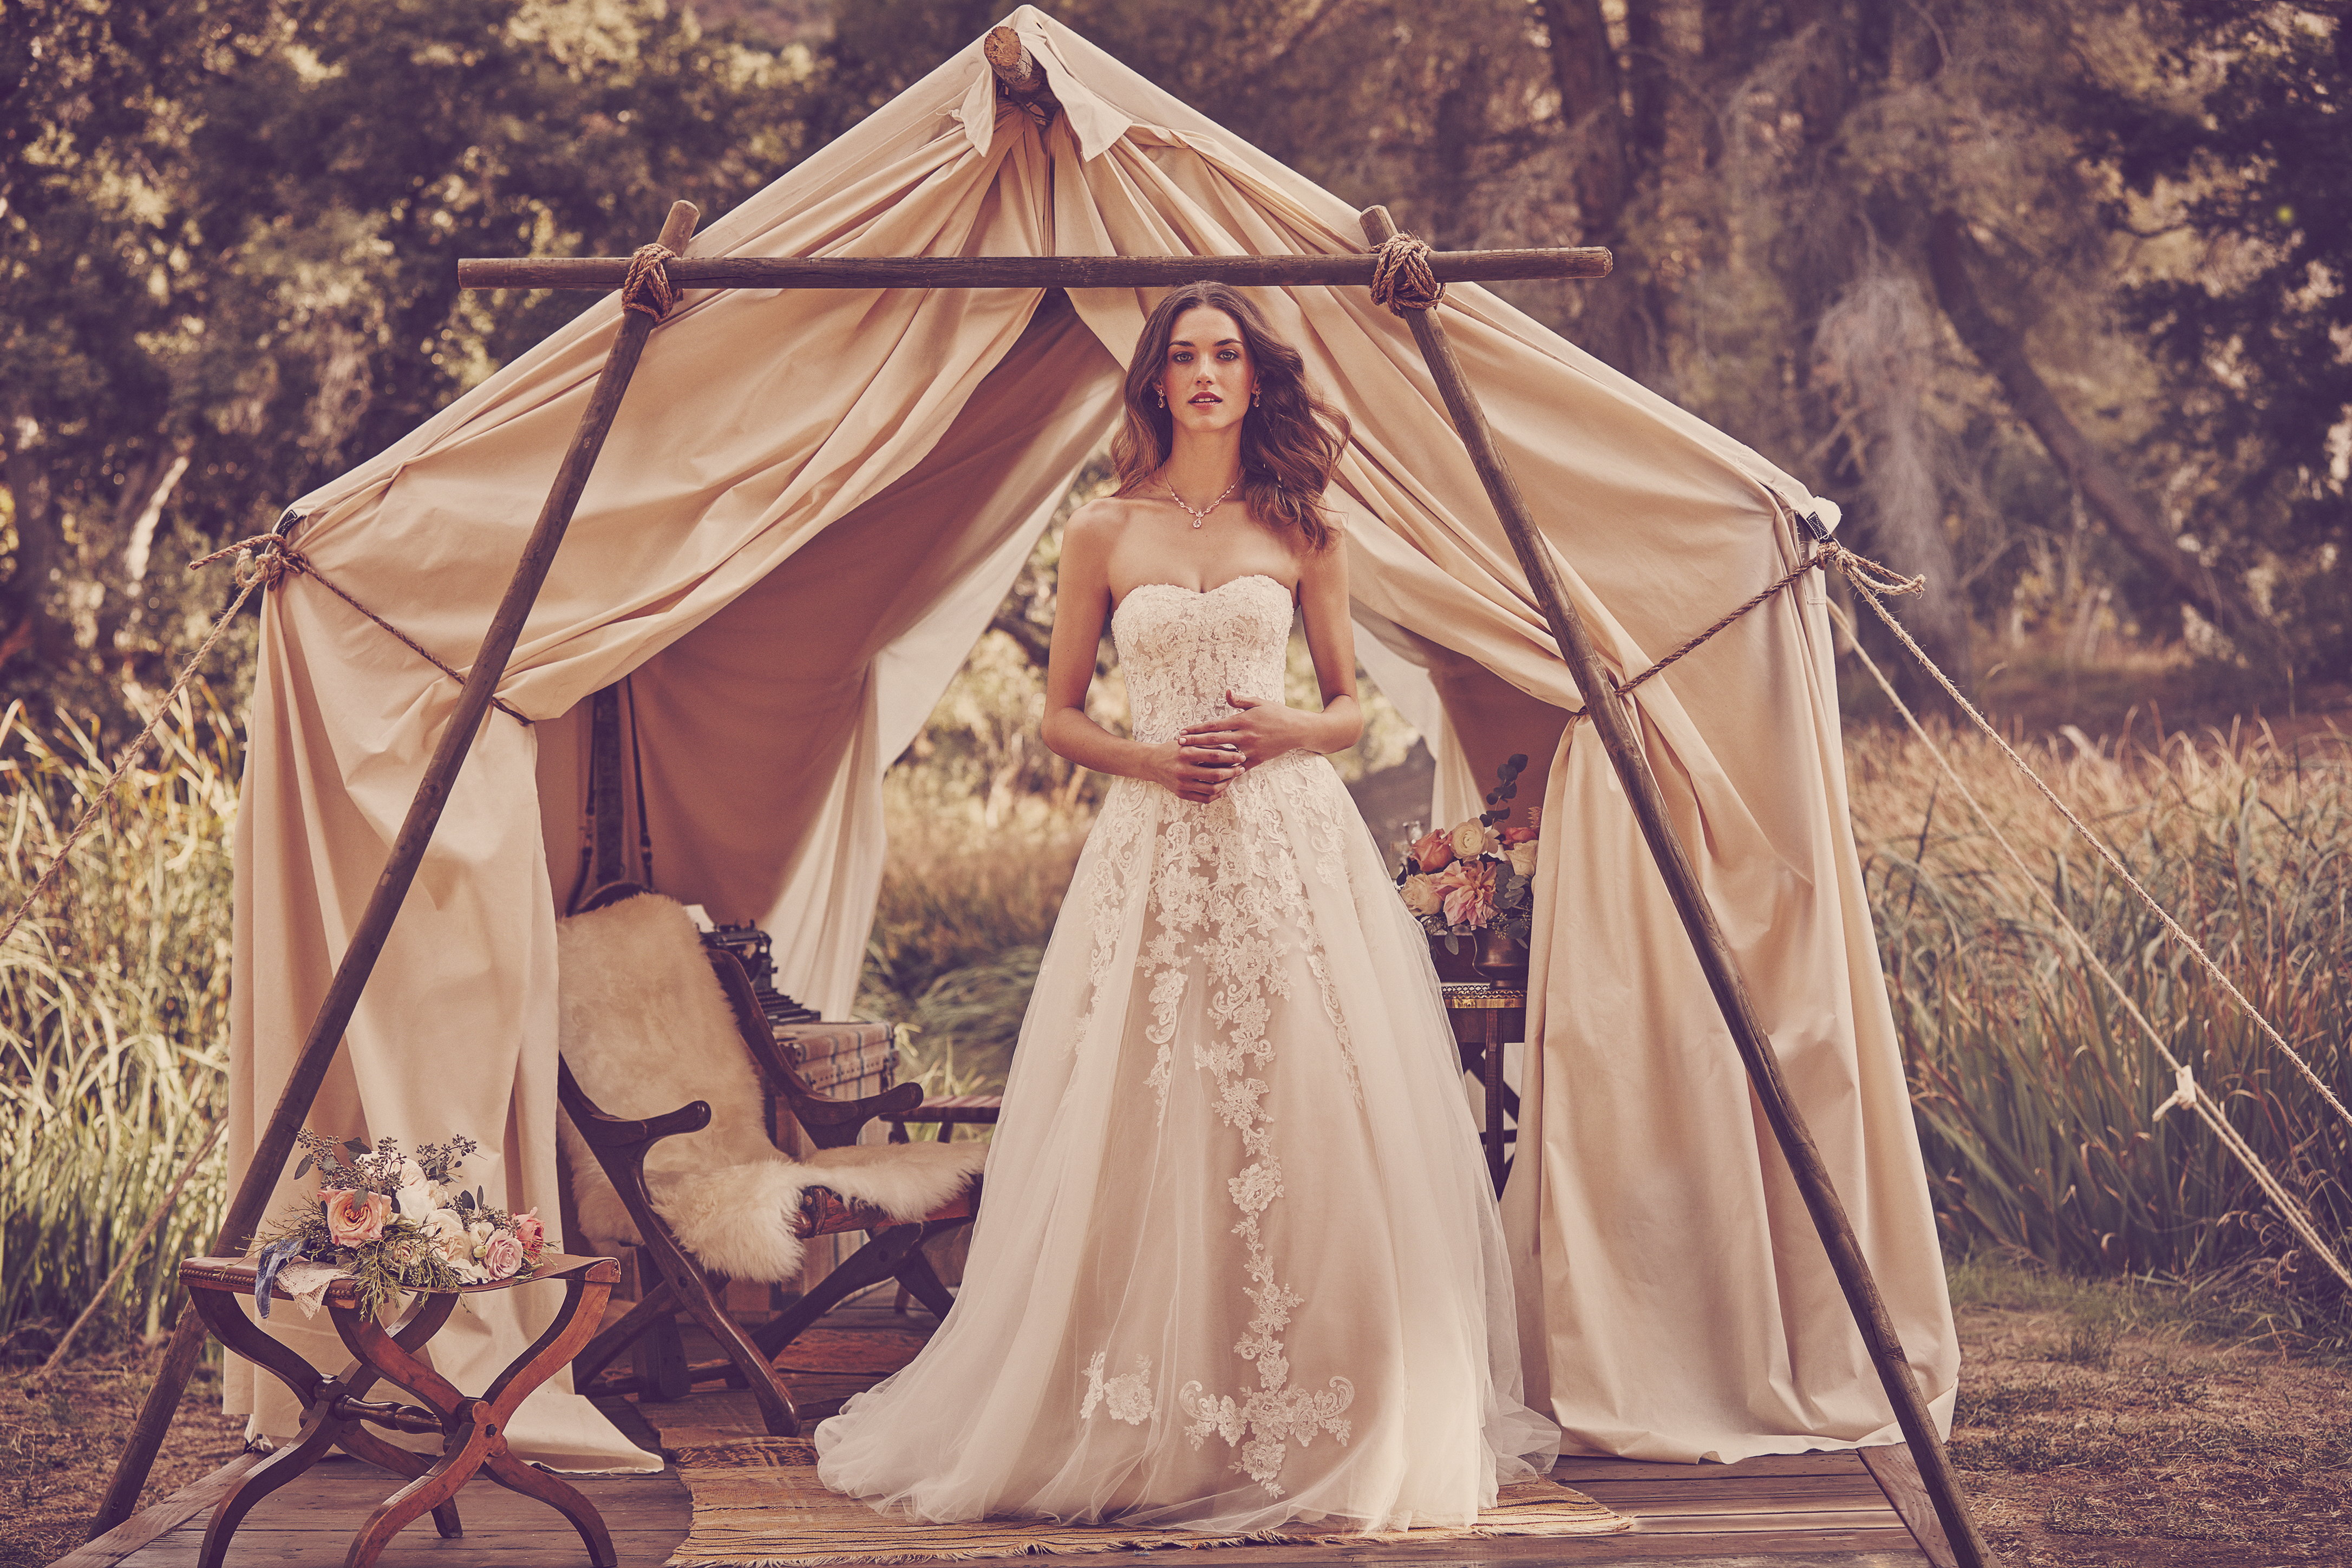 Woman standing in front of tent in ball gown wedding dress